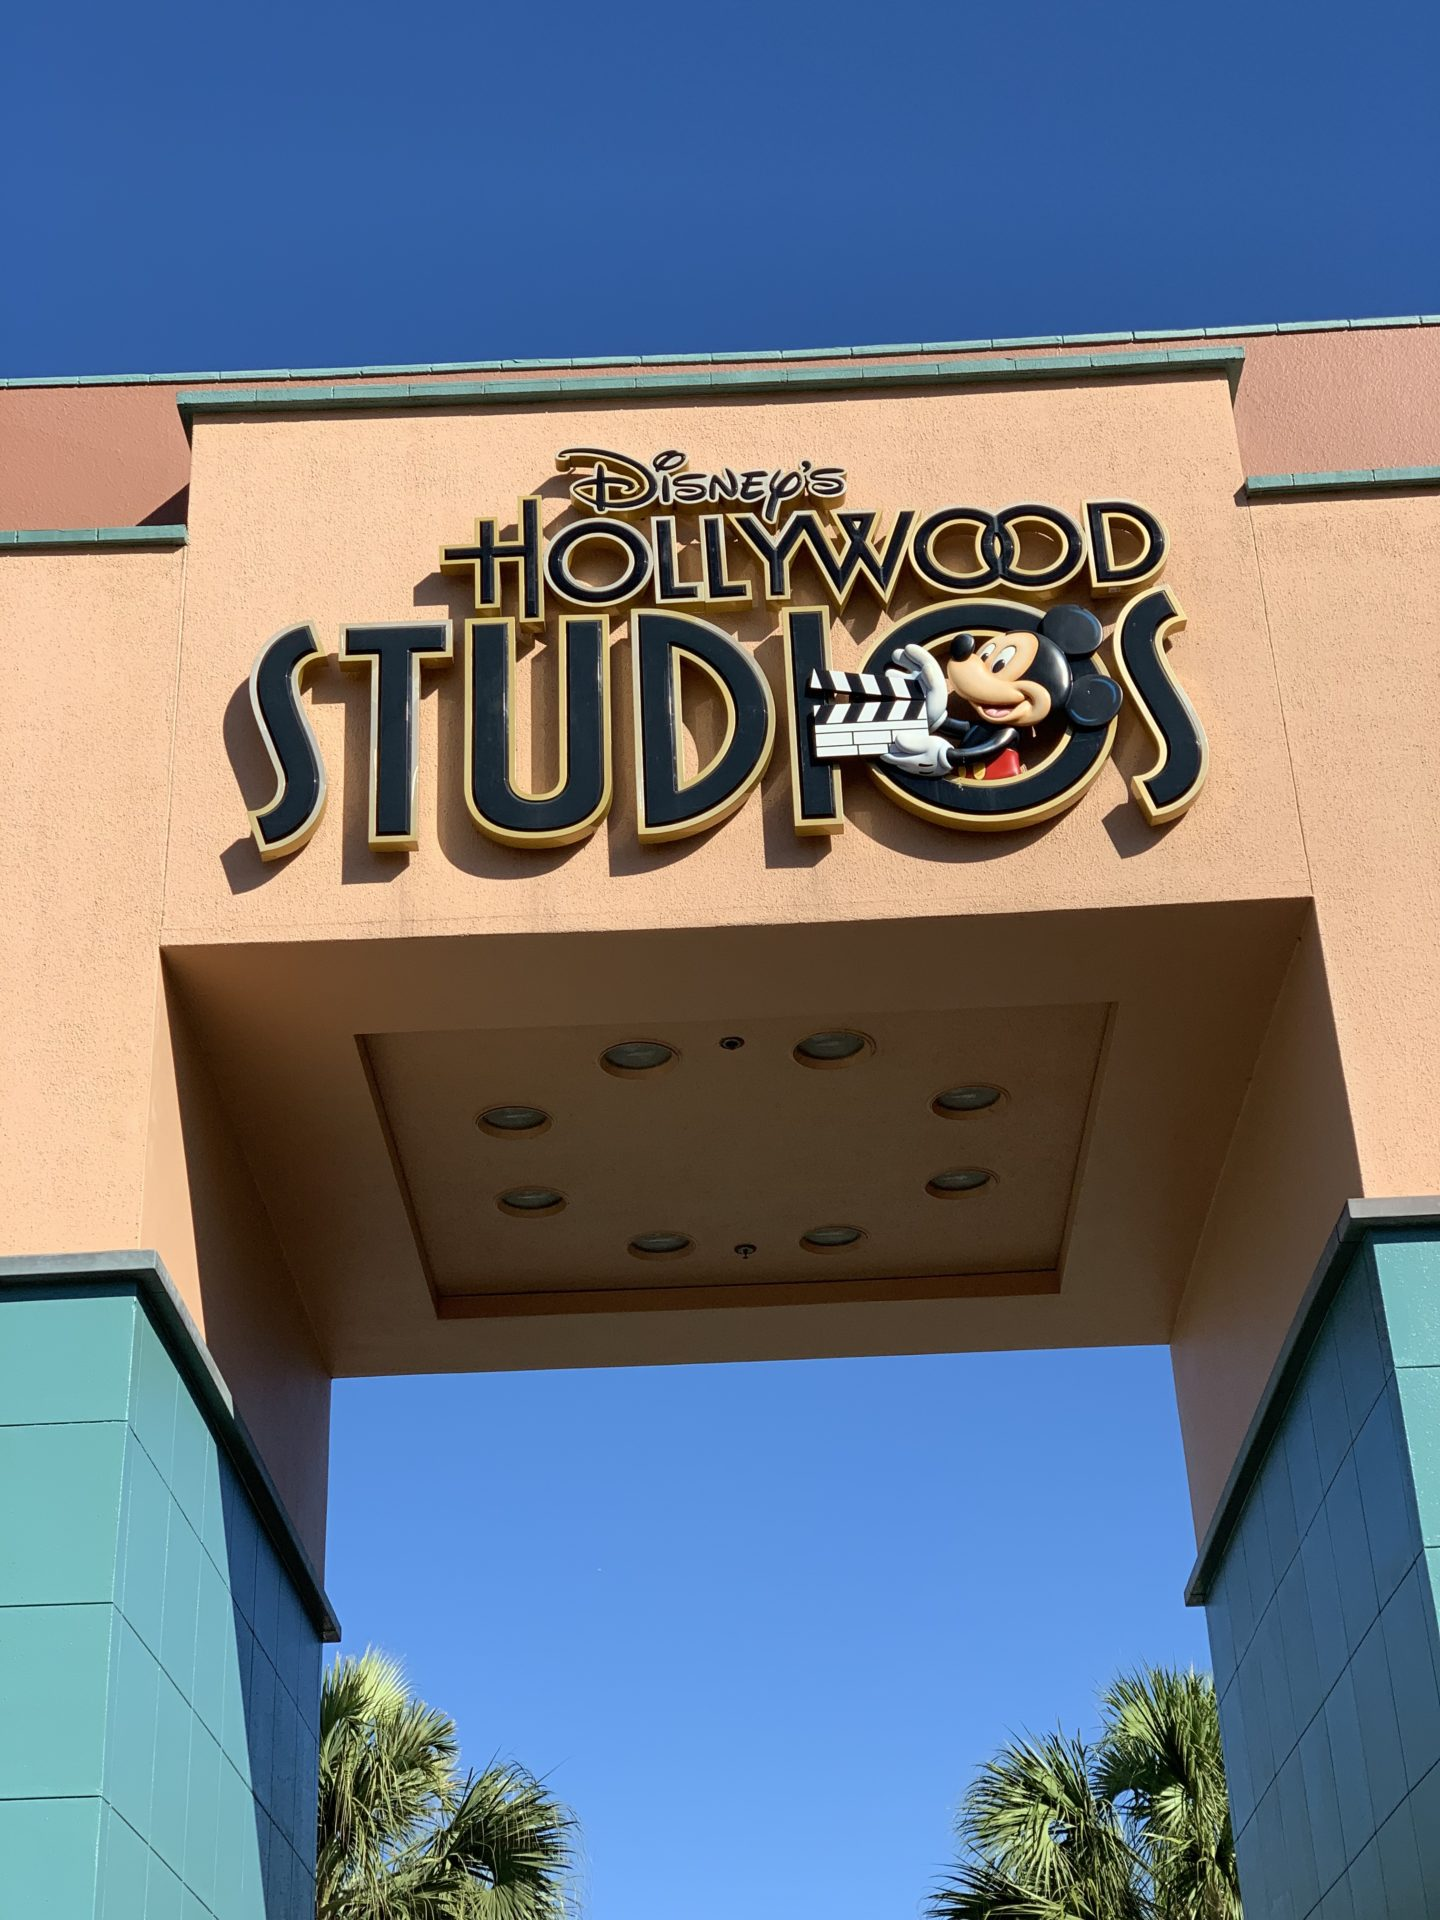 Hollywood Studios - Our Favourite Disney Theme Park